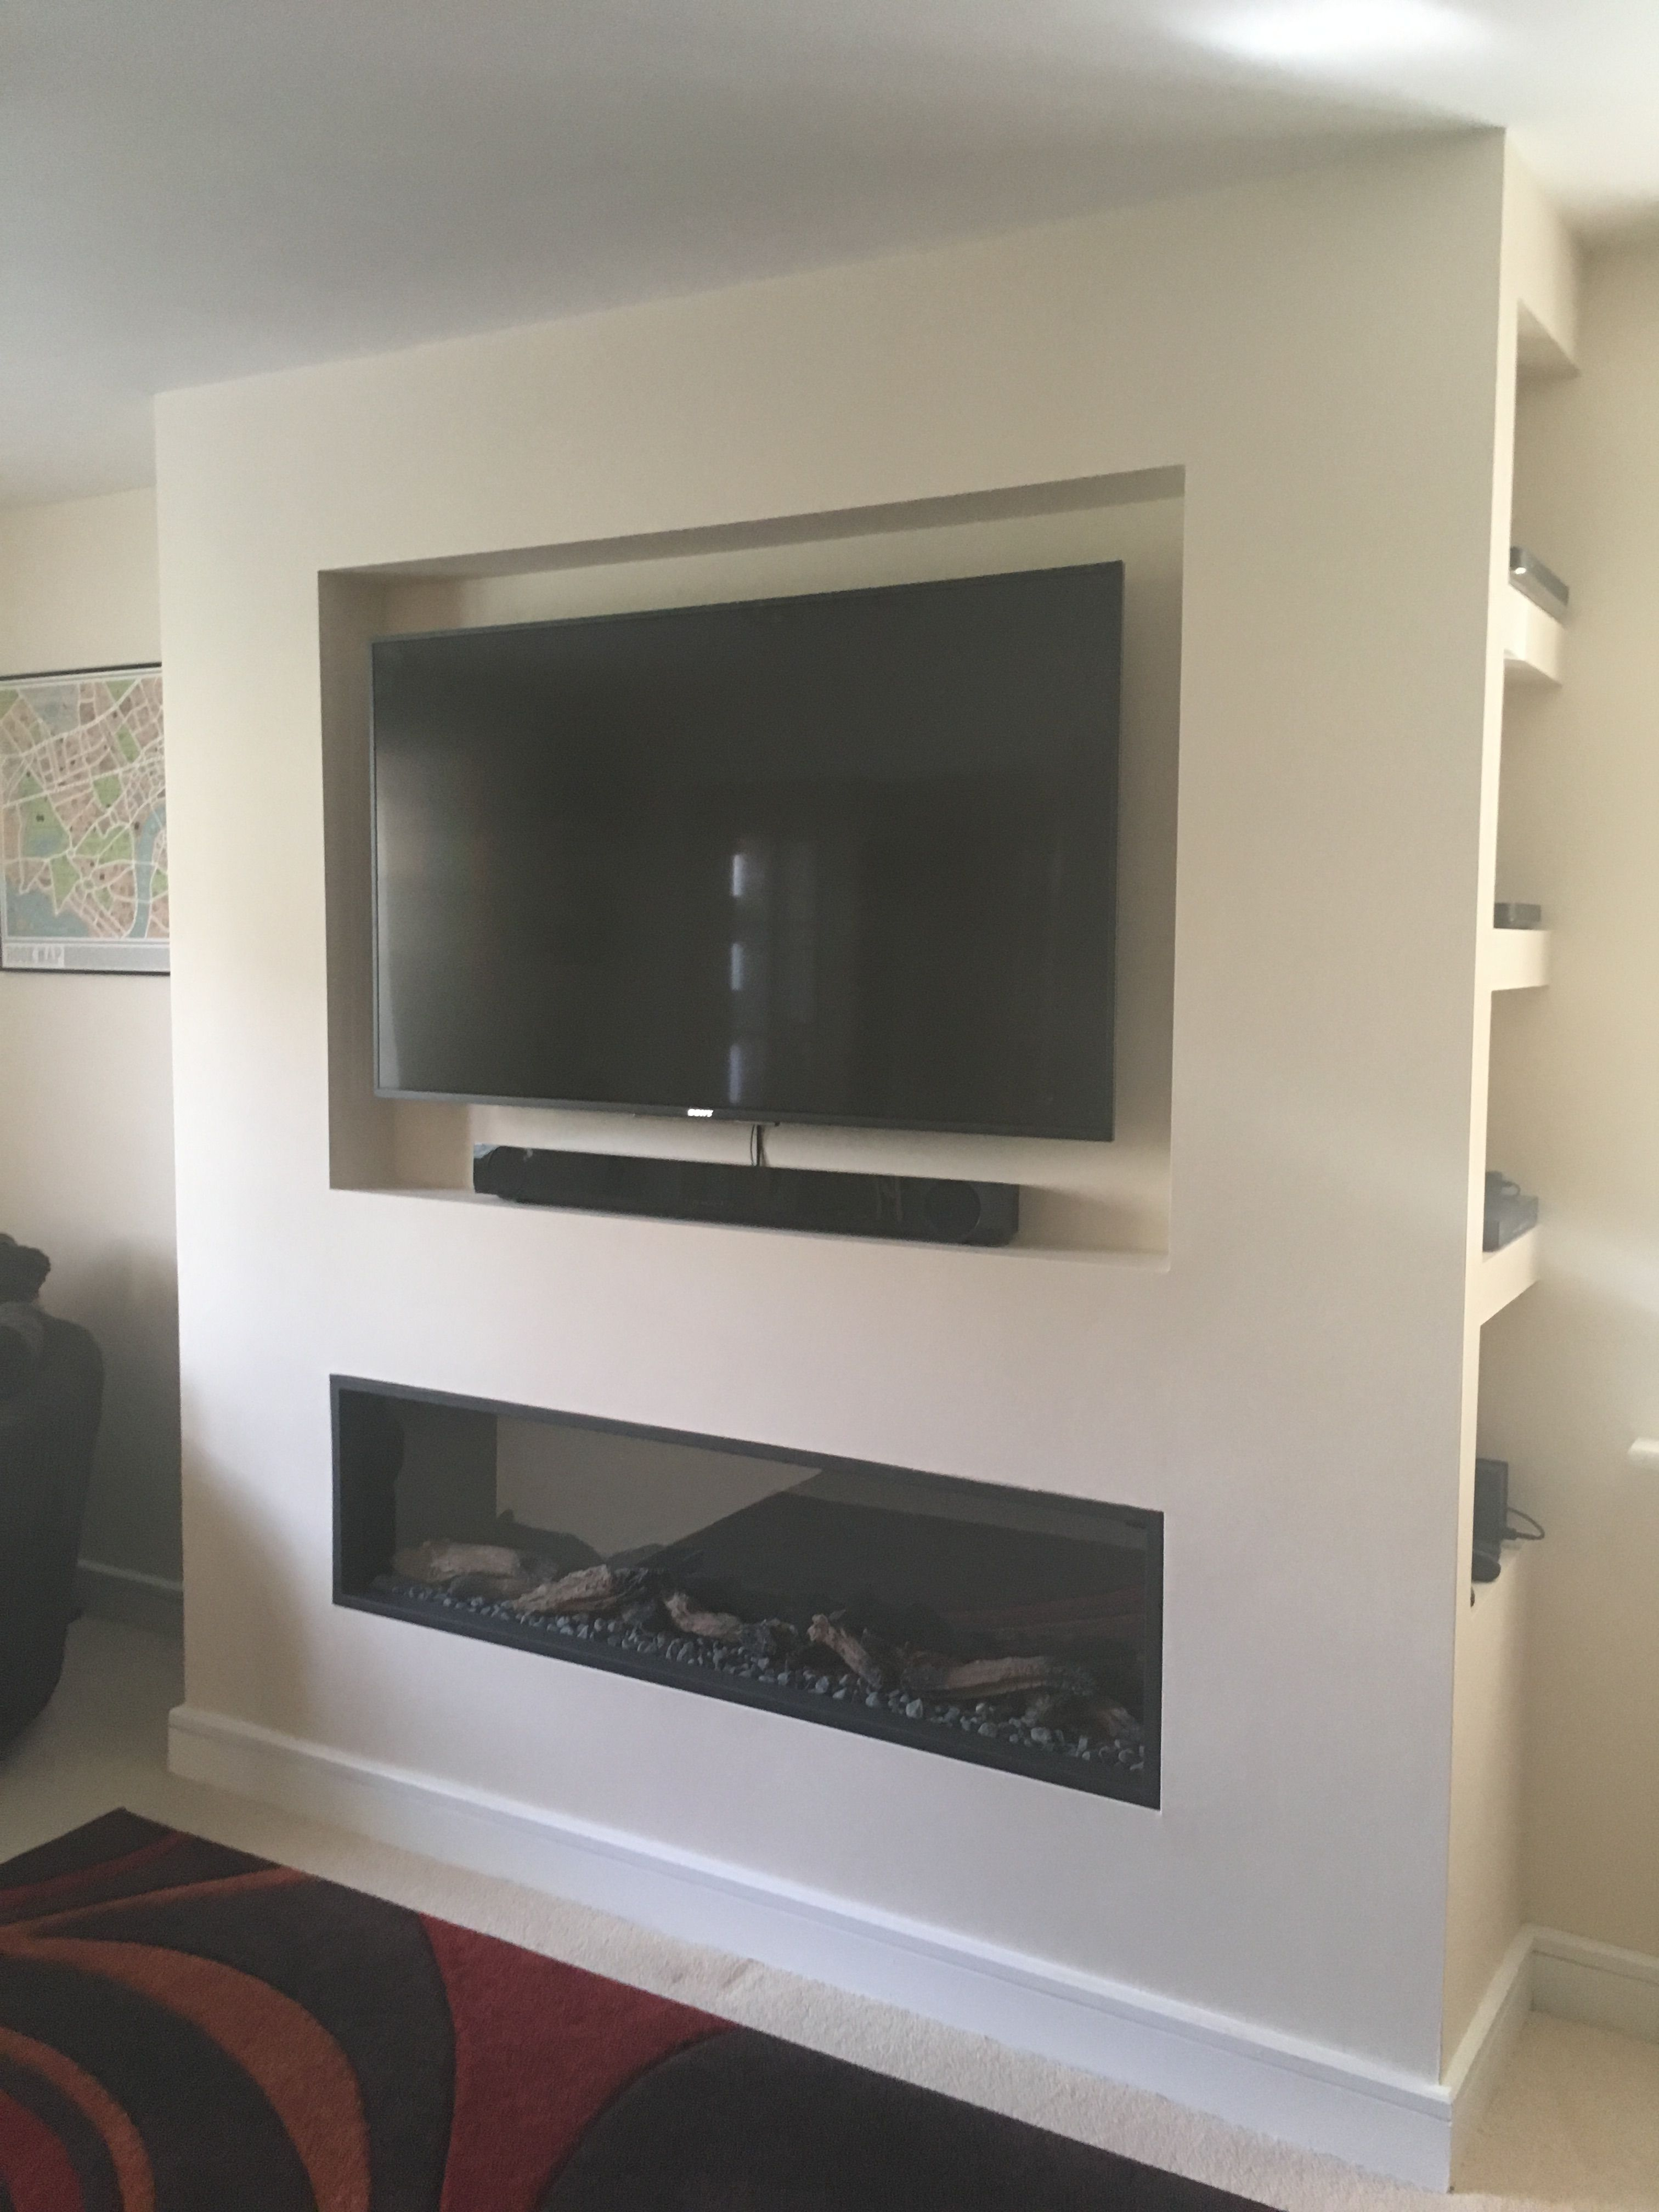 Wall Mounted Recessed Tv Sound Bar Inset Fireplace